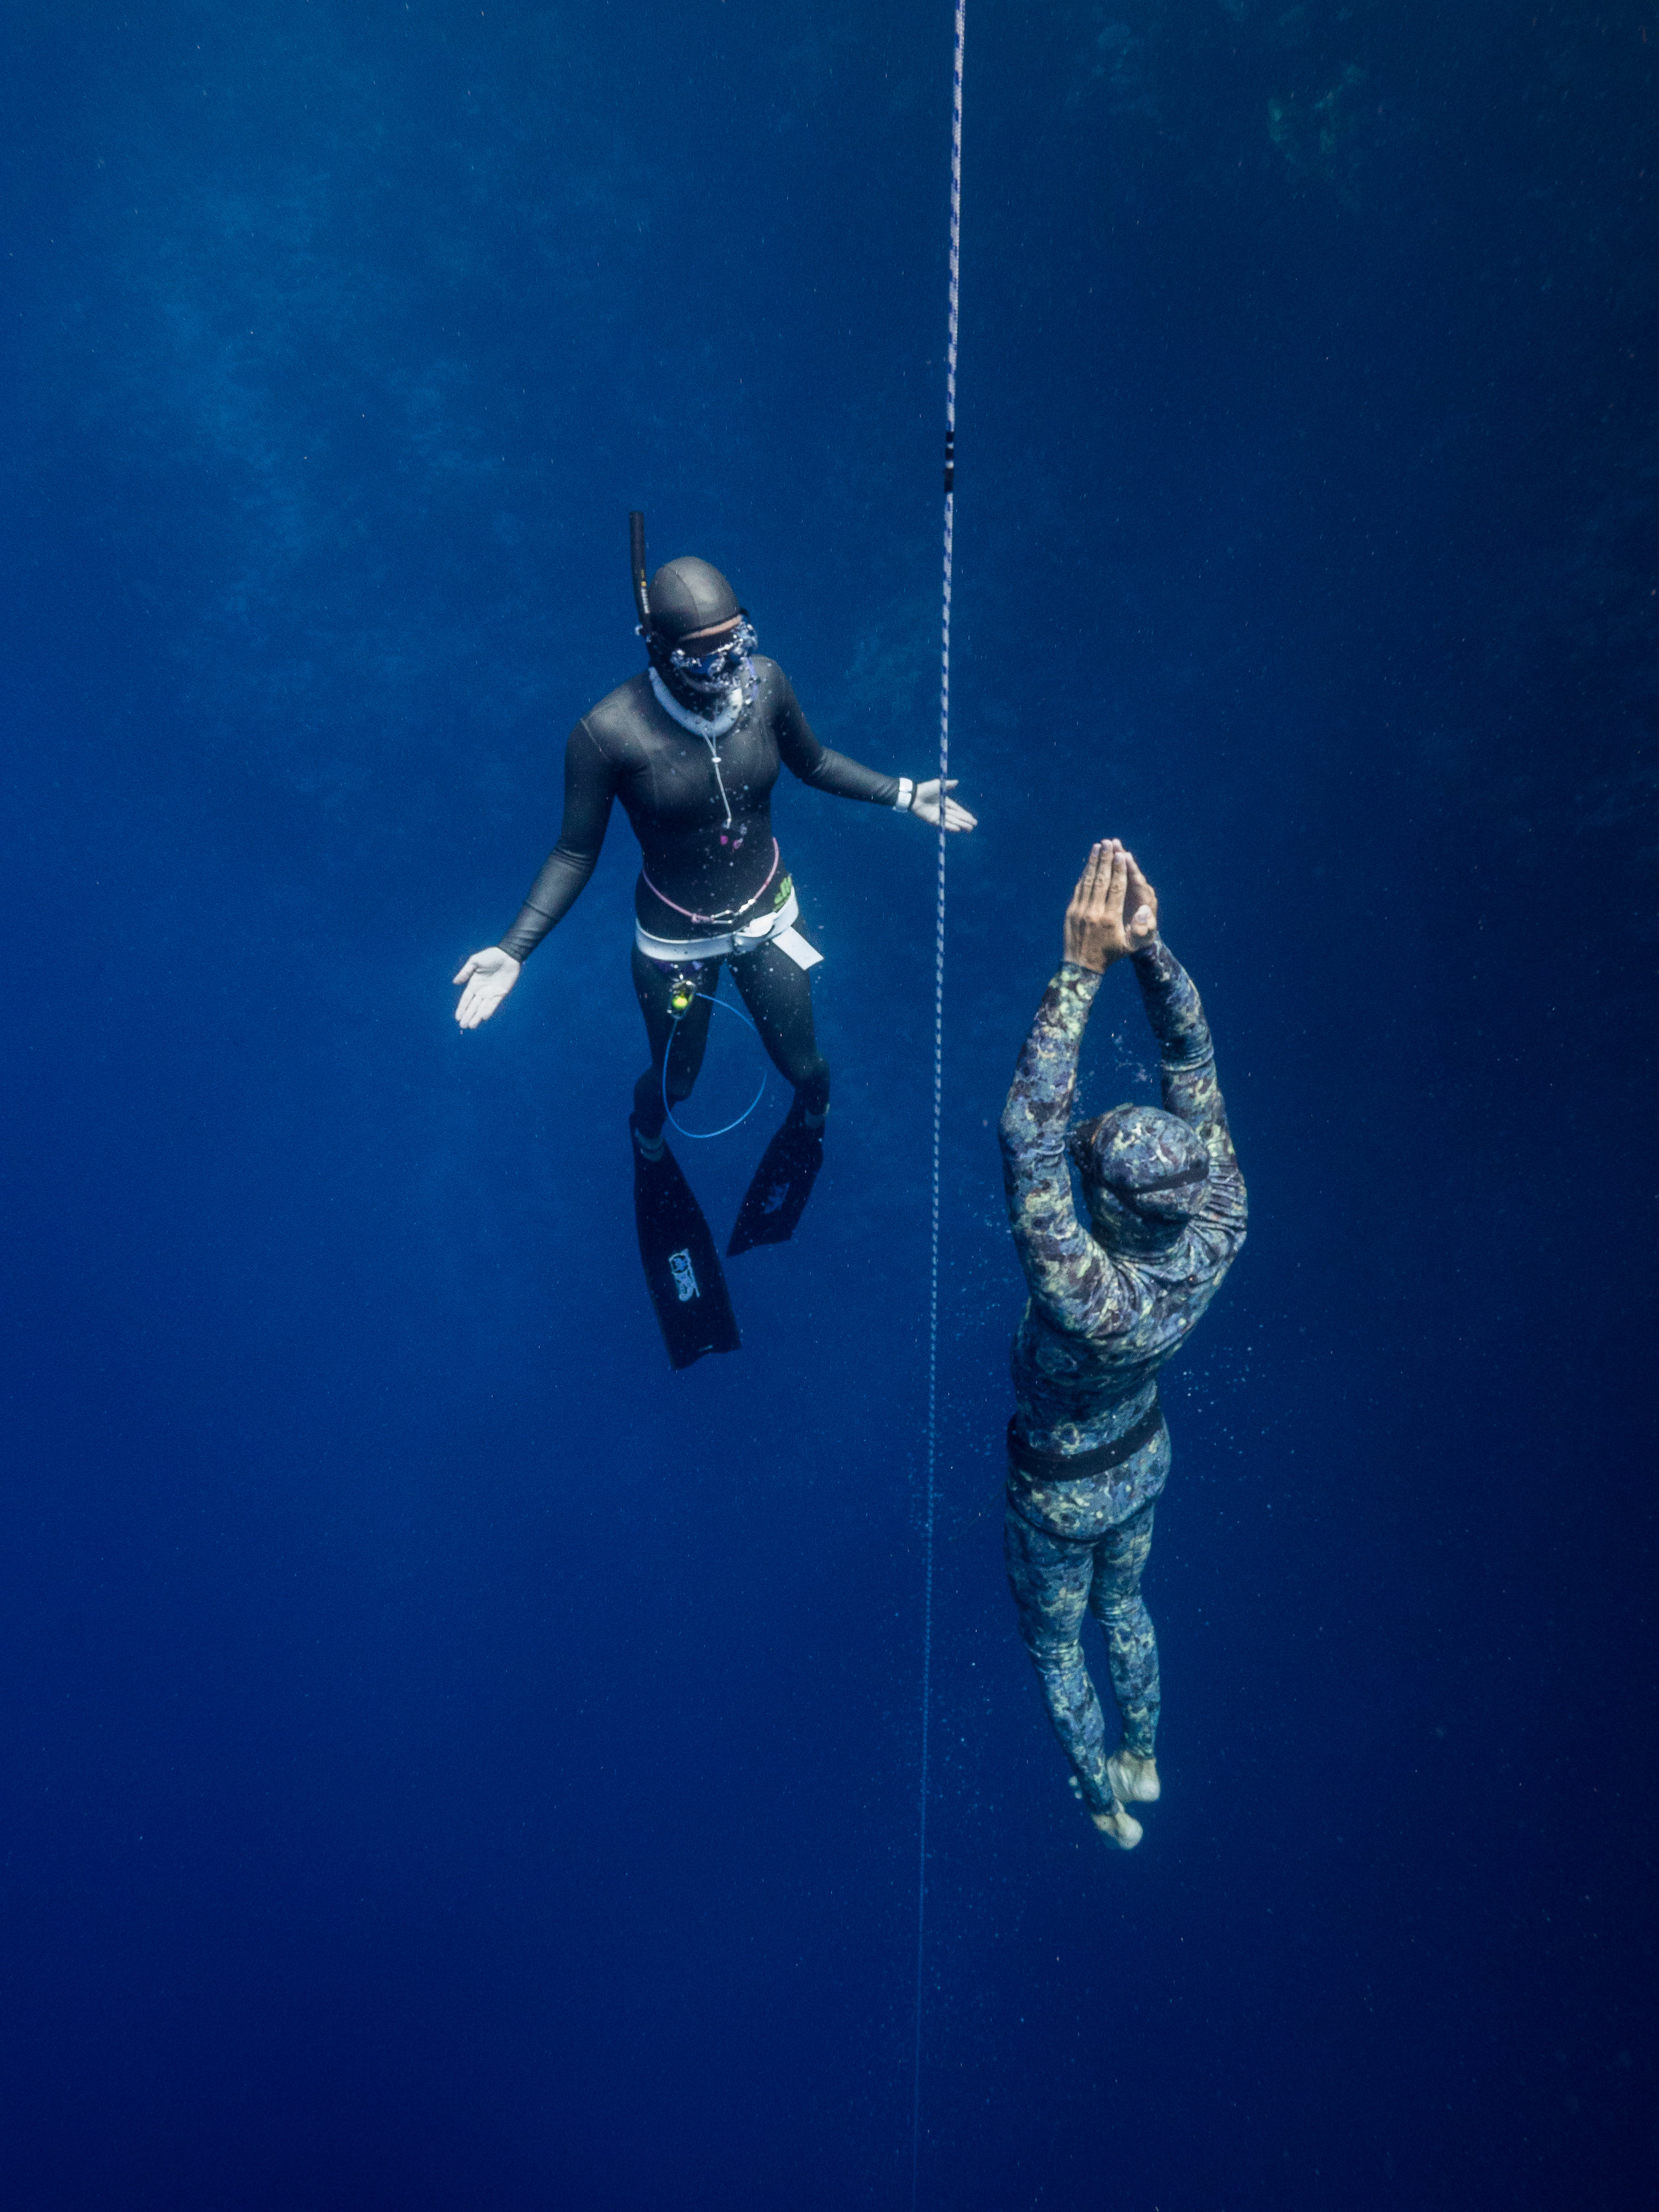 Freediving with safety diver in Byron Bay